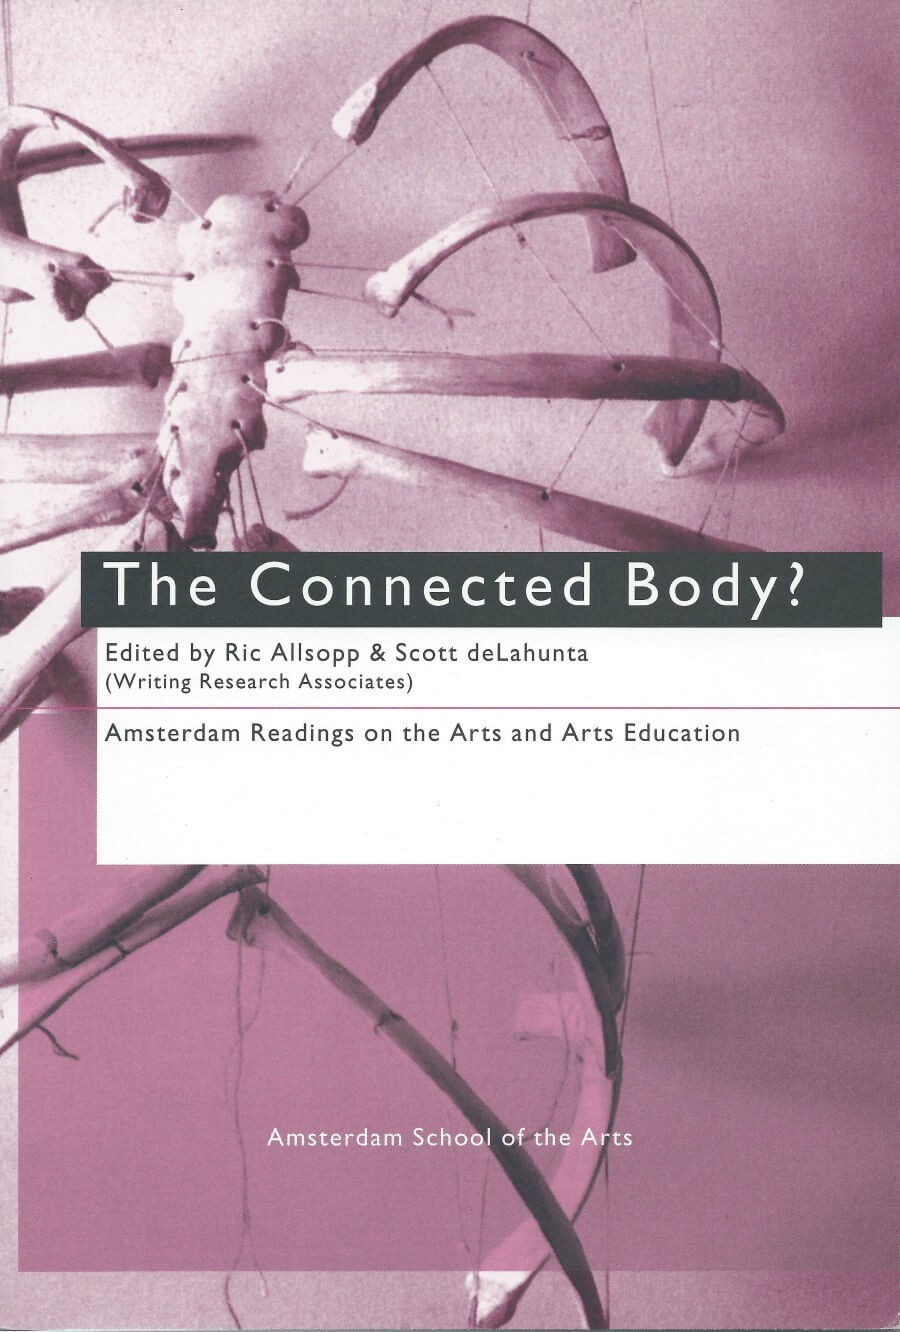 The Connected Body?